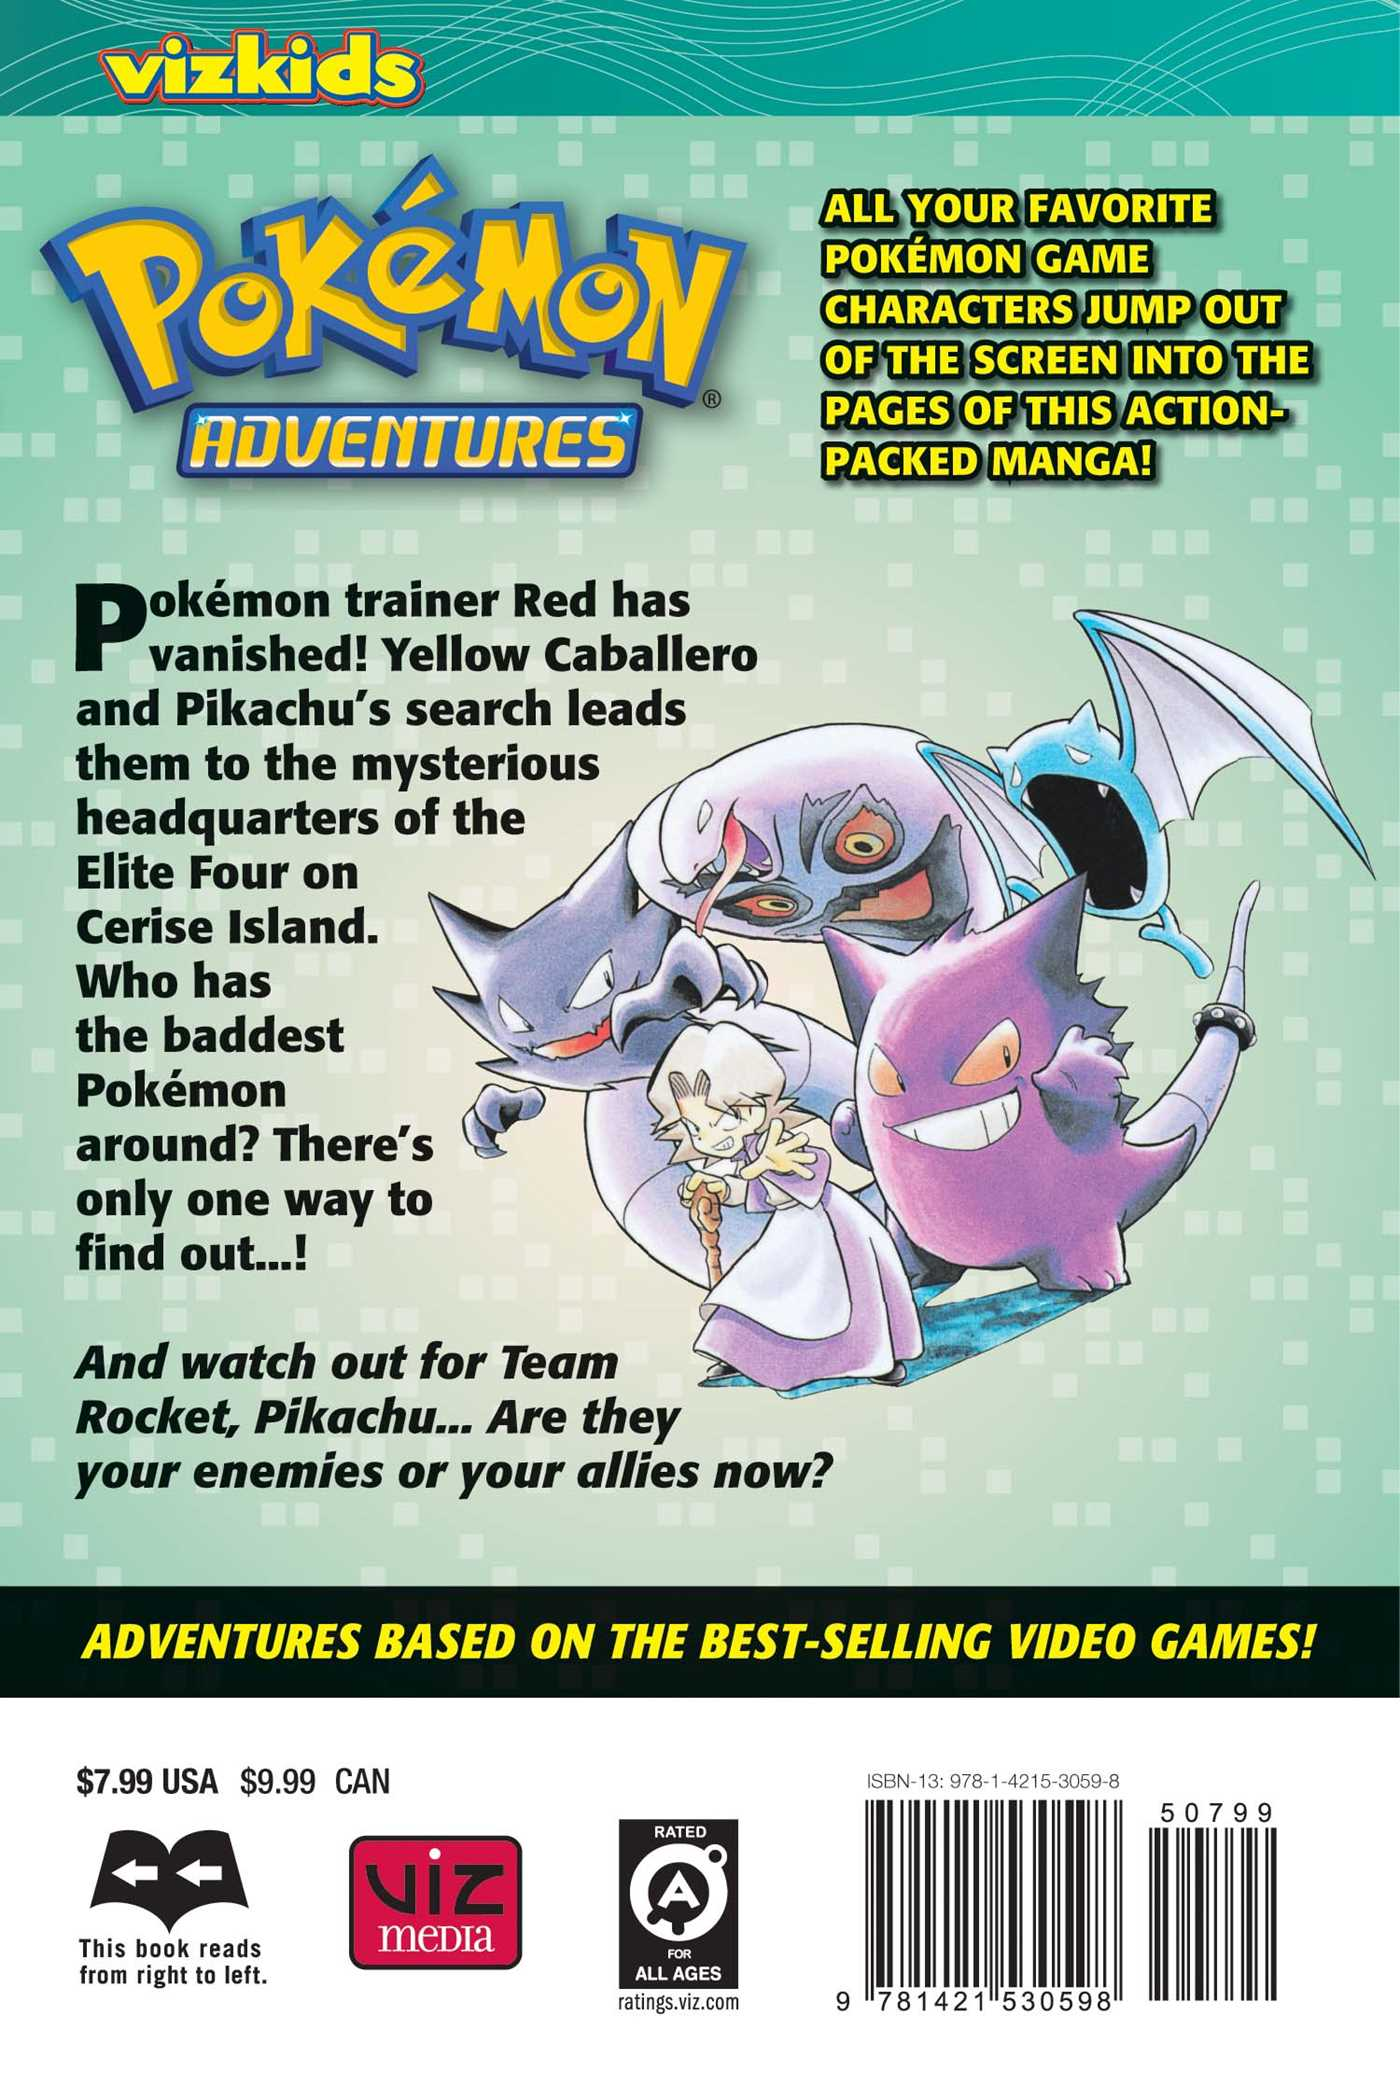 Pokemon-adventures-vol-6-2nd-edition-9781421530598_hr-back